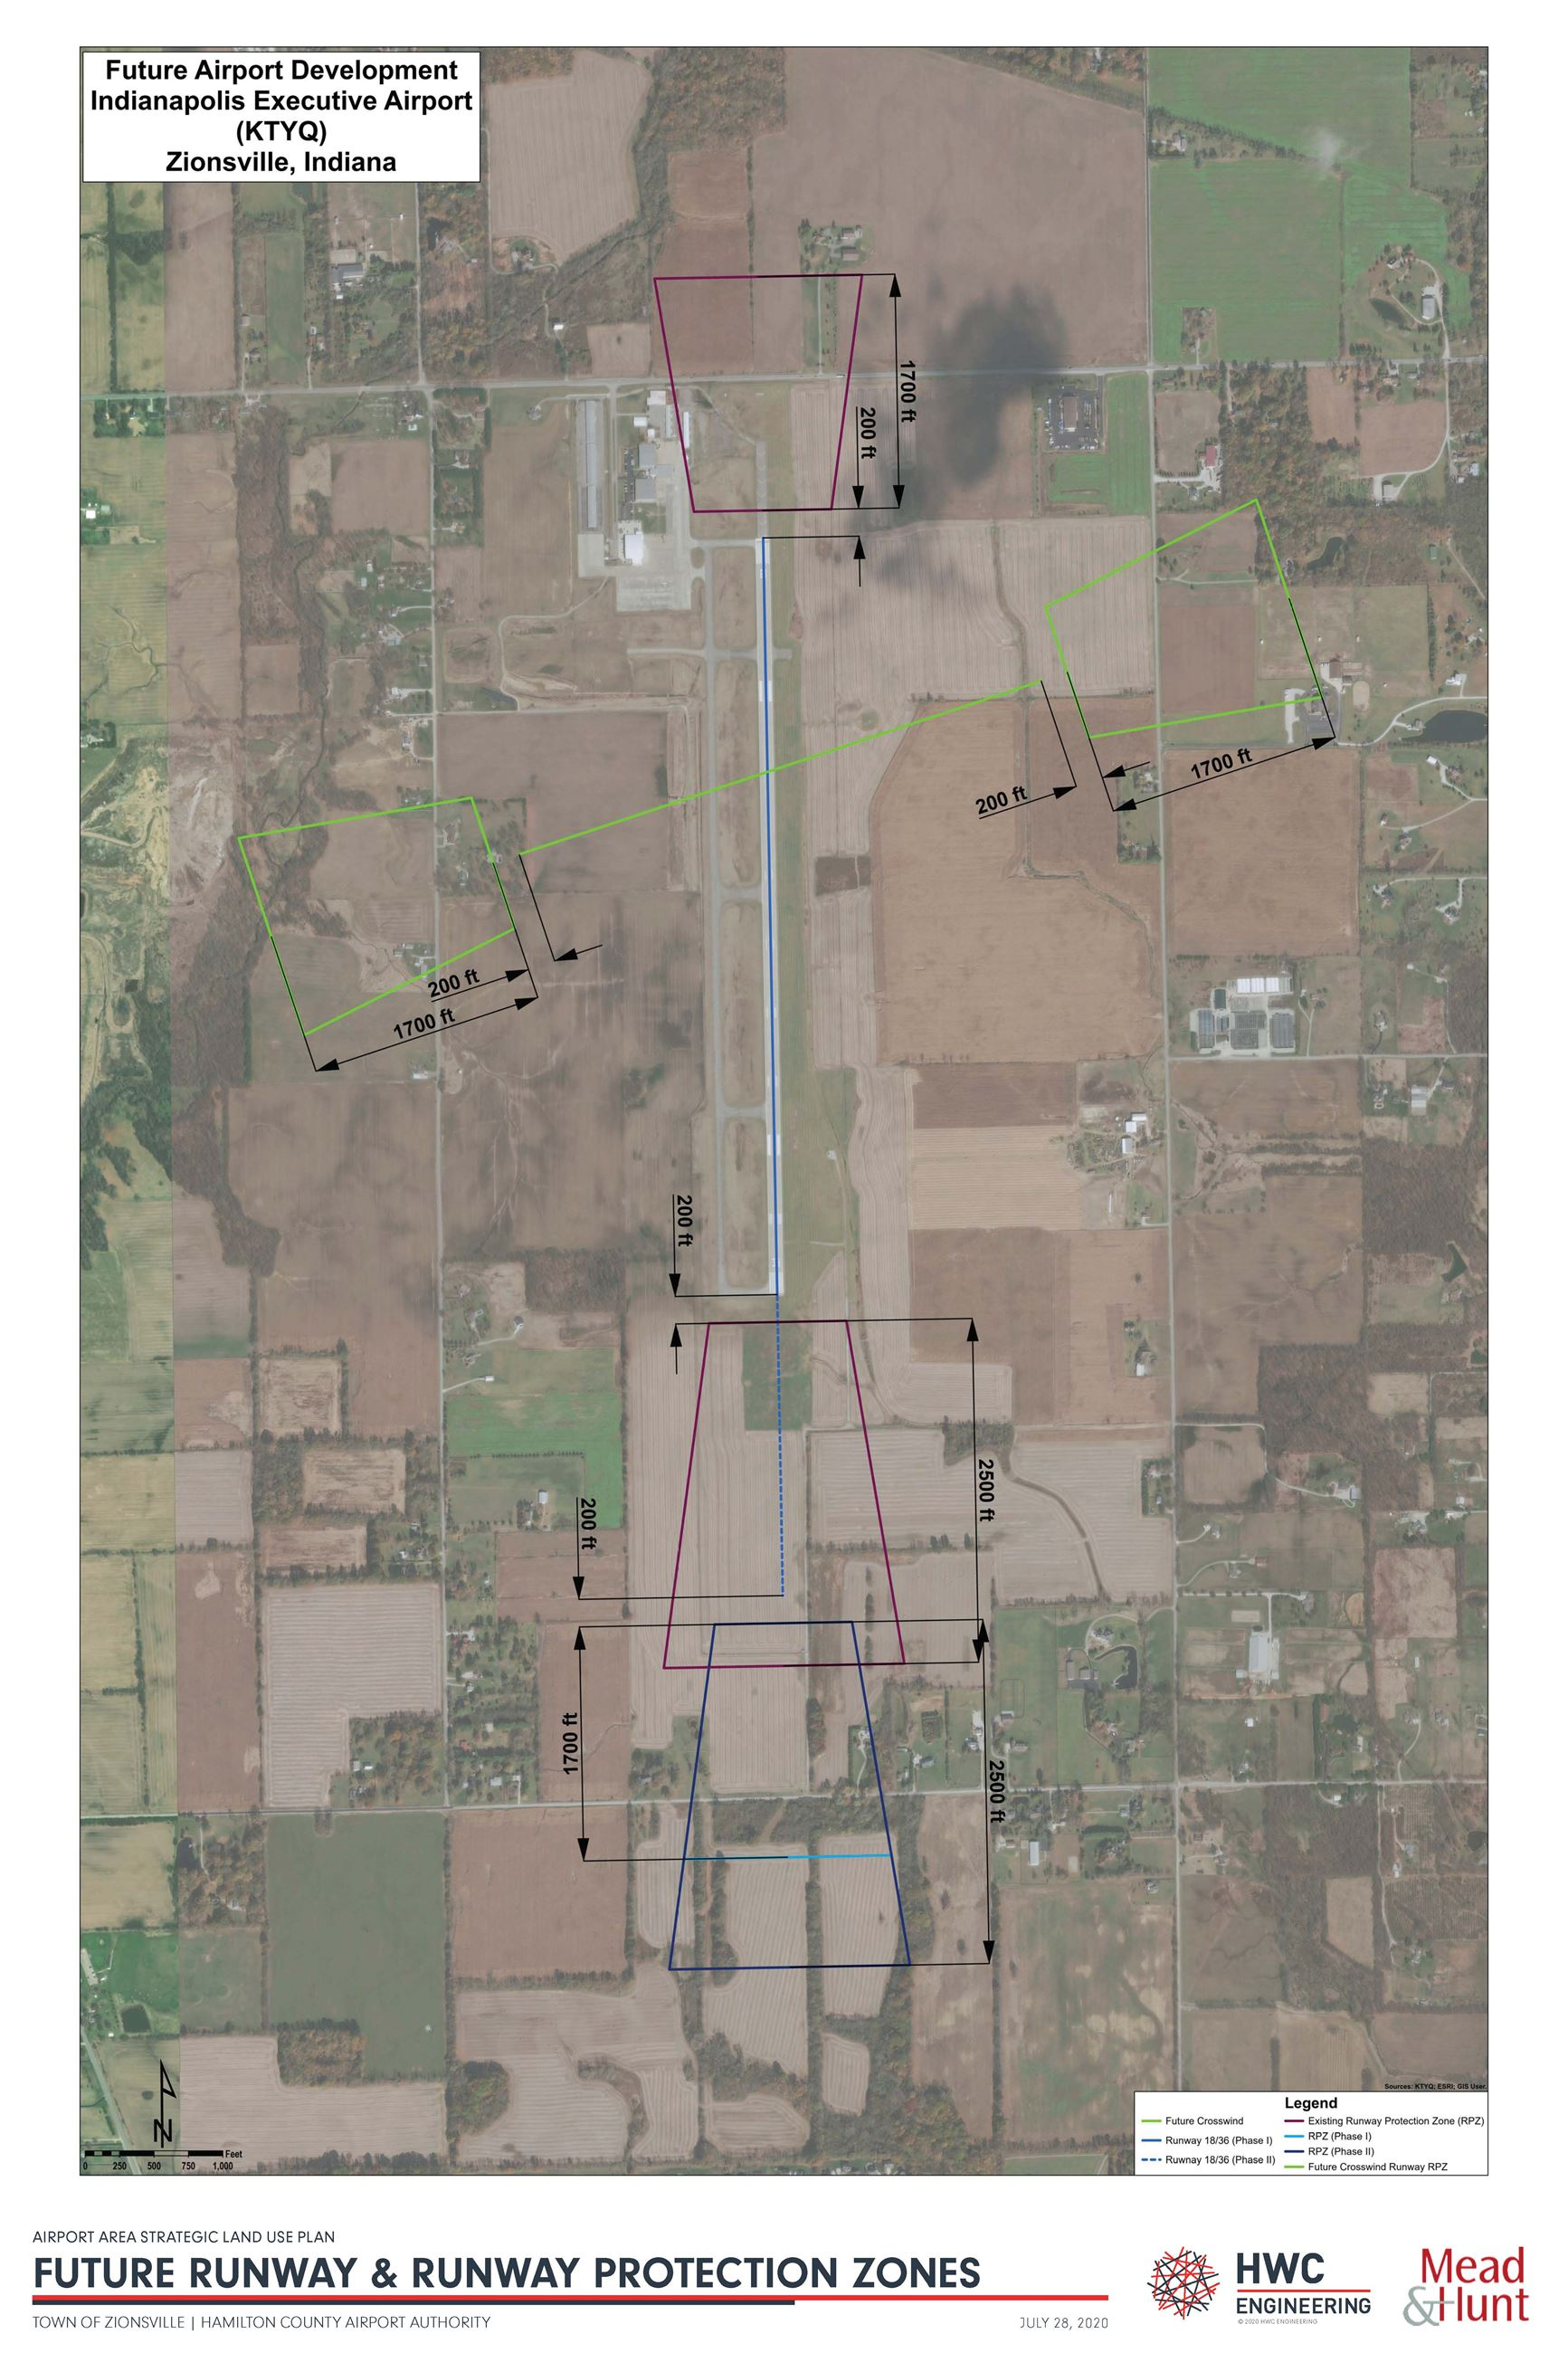 Future Runway and Runway Protection Zones